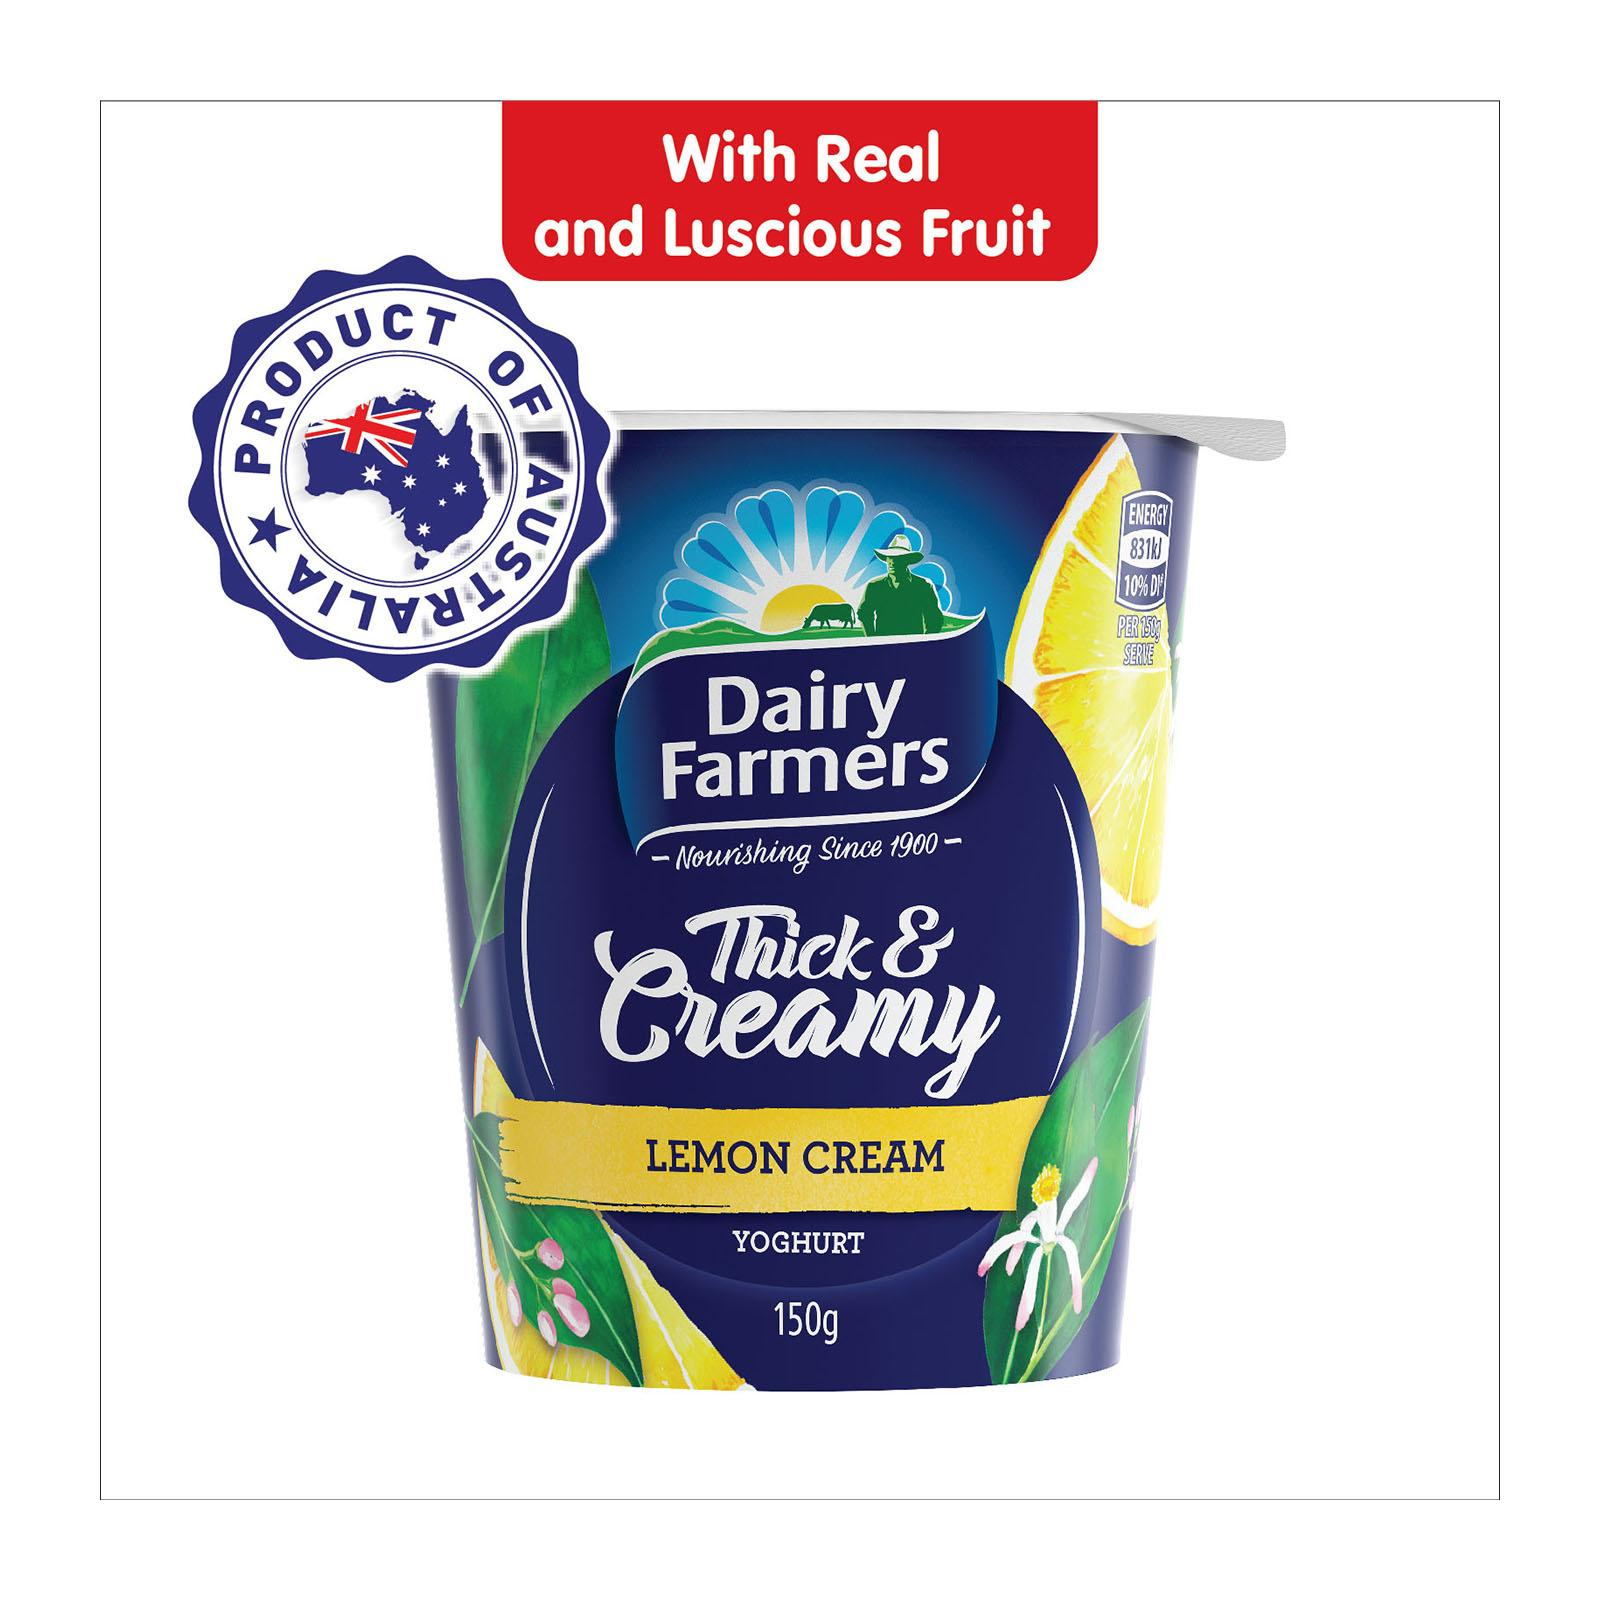 DAIRY FARMERS Yoghurt Thick & Creamy Lemon Cream 150g